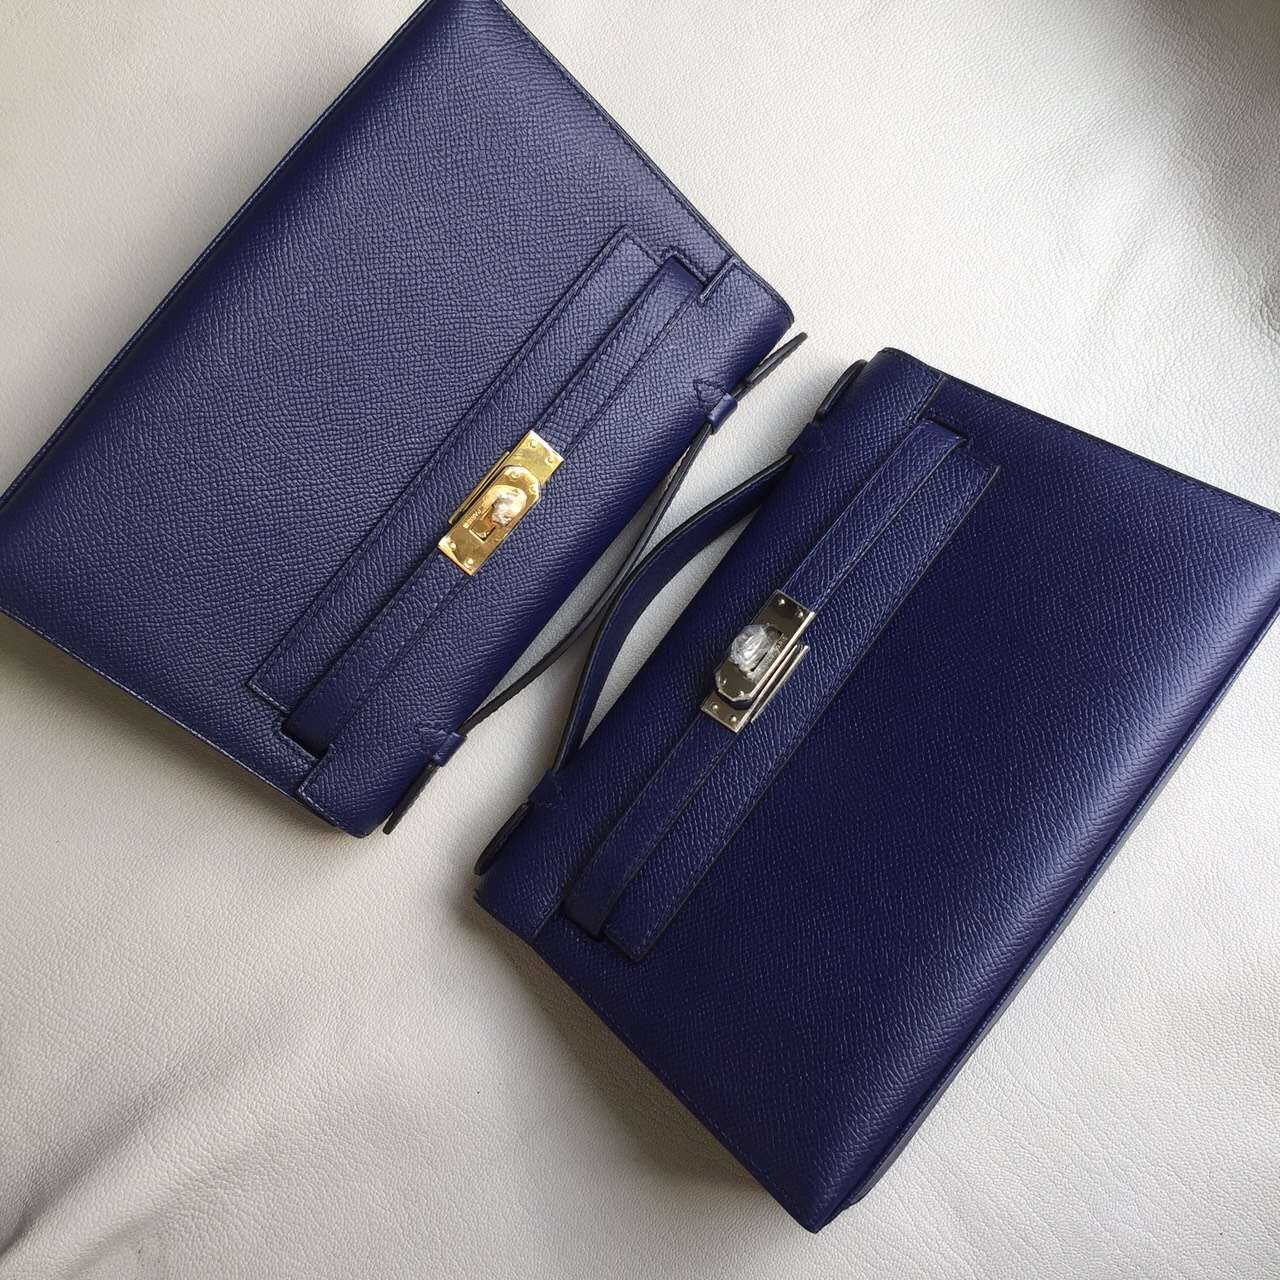 On Line Hermes 73 Blue Saphir Epsom Leather Minikelly Pochette Bag22cm